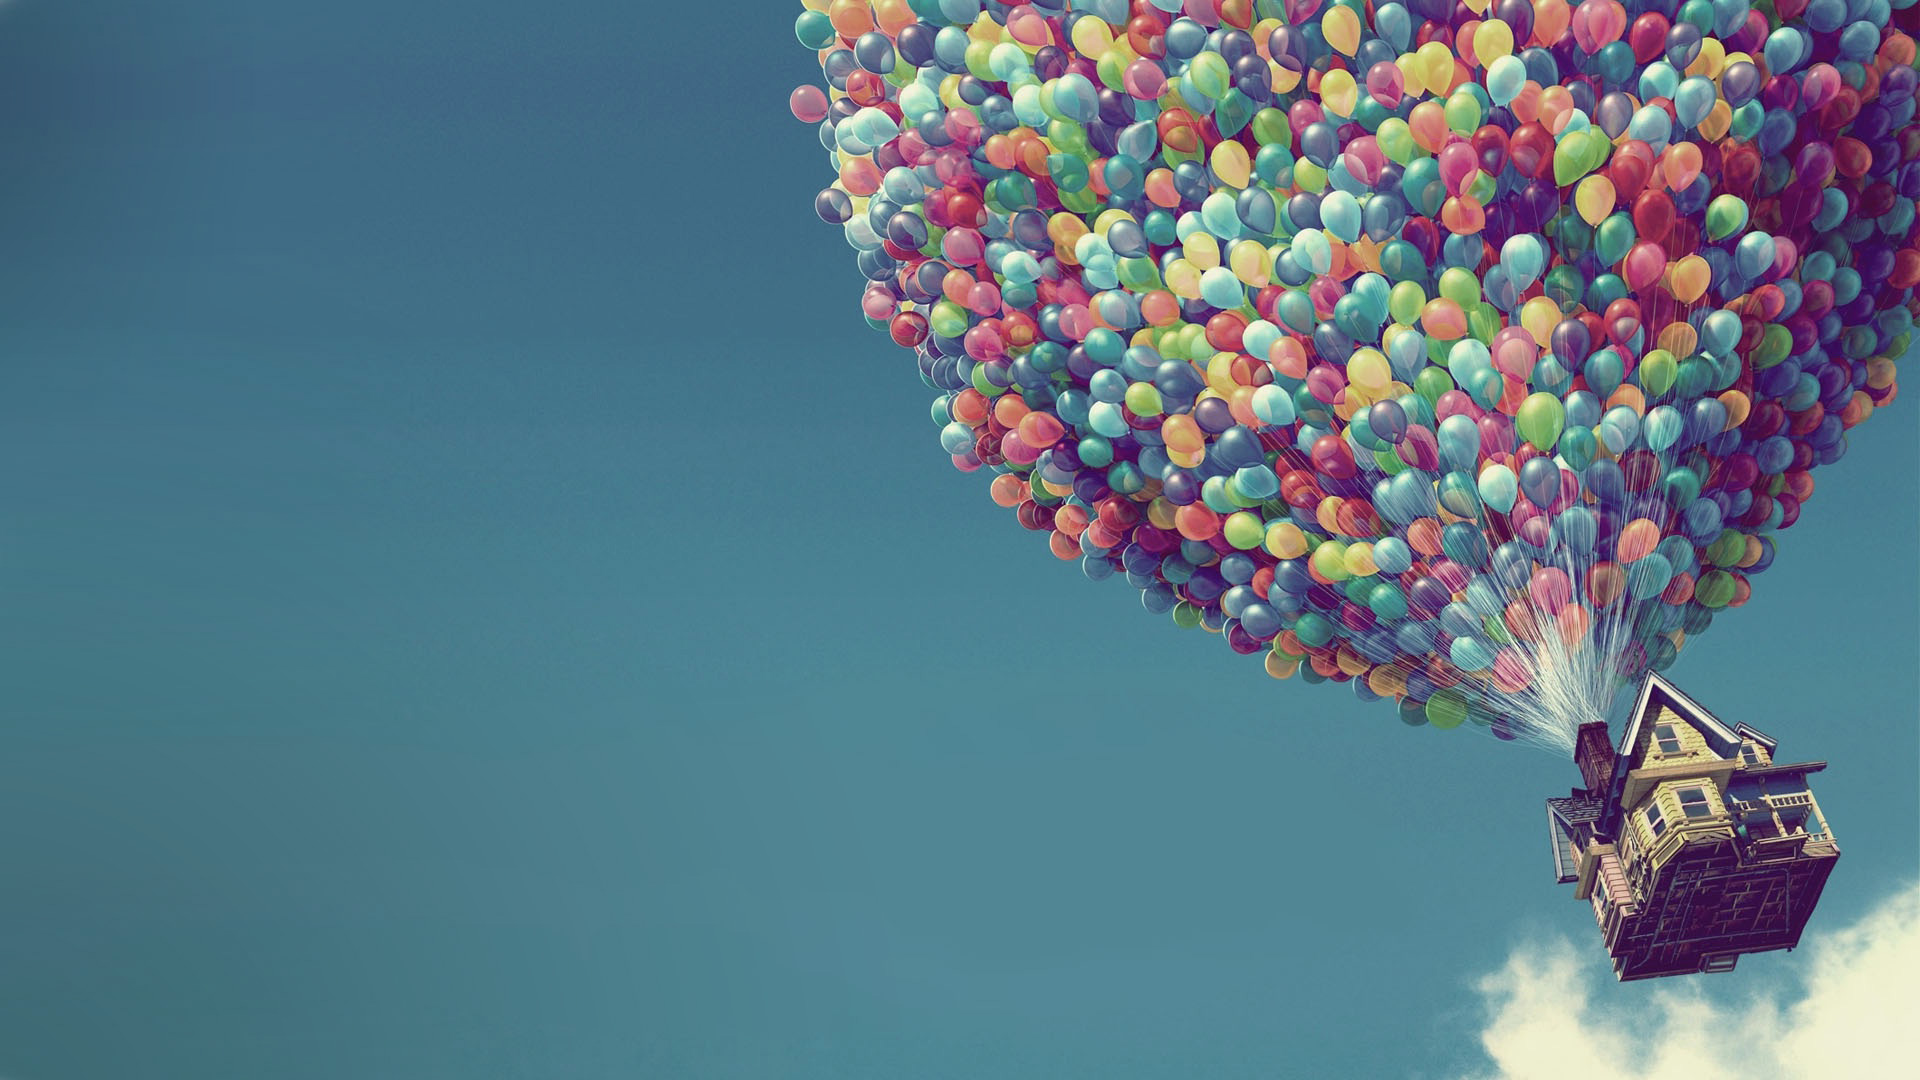 UP Disney Pixar cartoon Full HD Wallpaper Balloons and the House 1920x1080